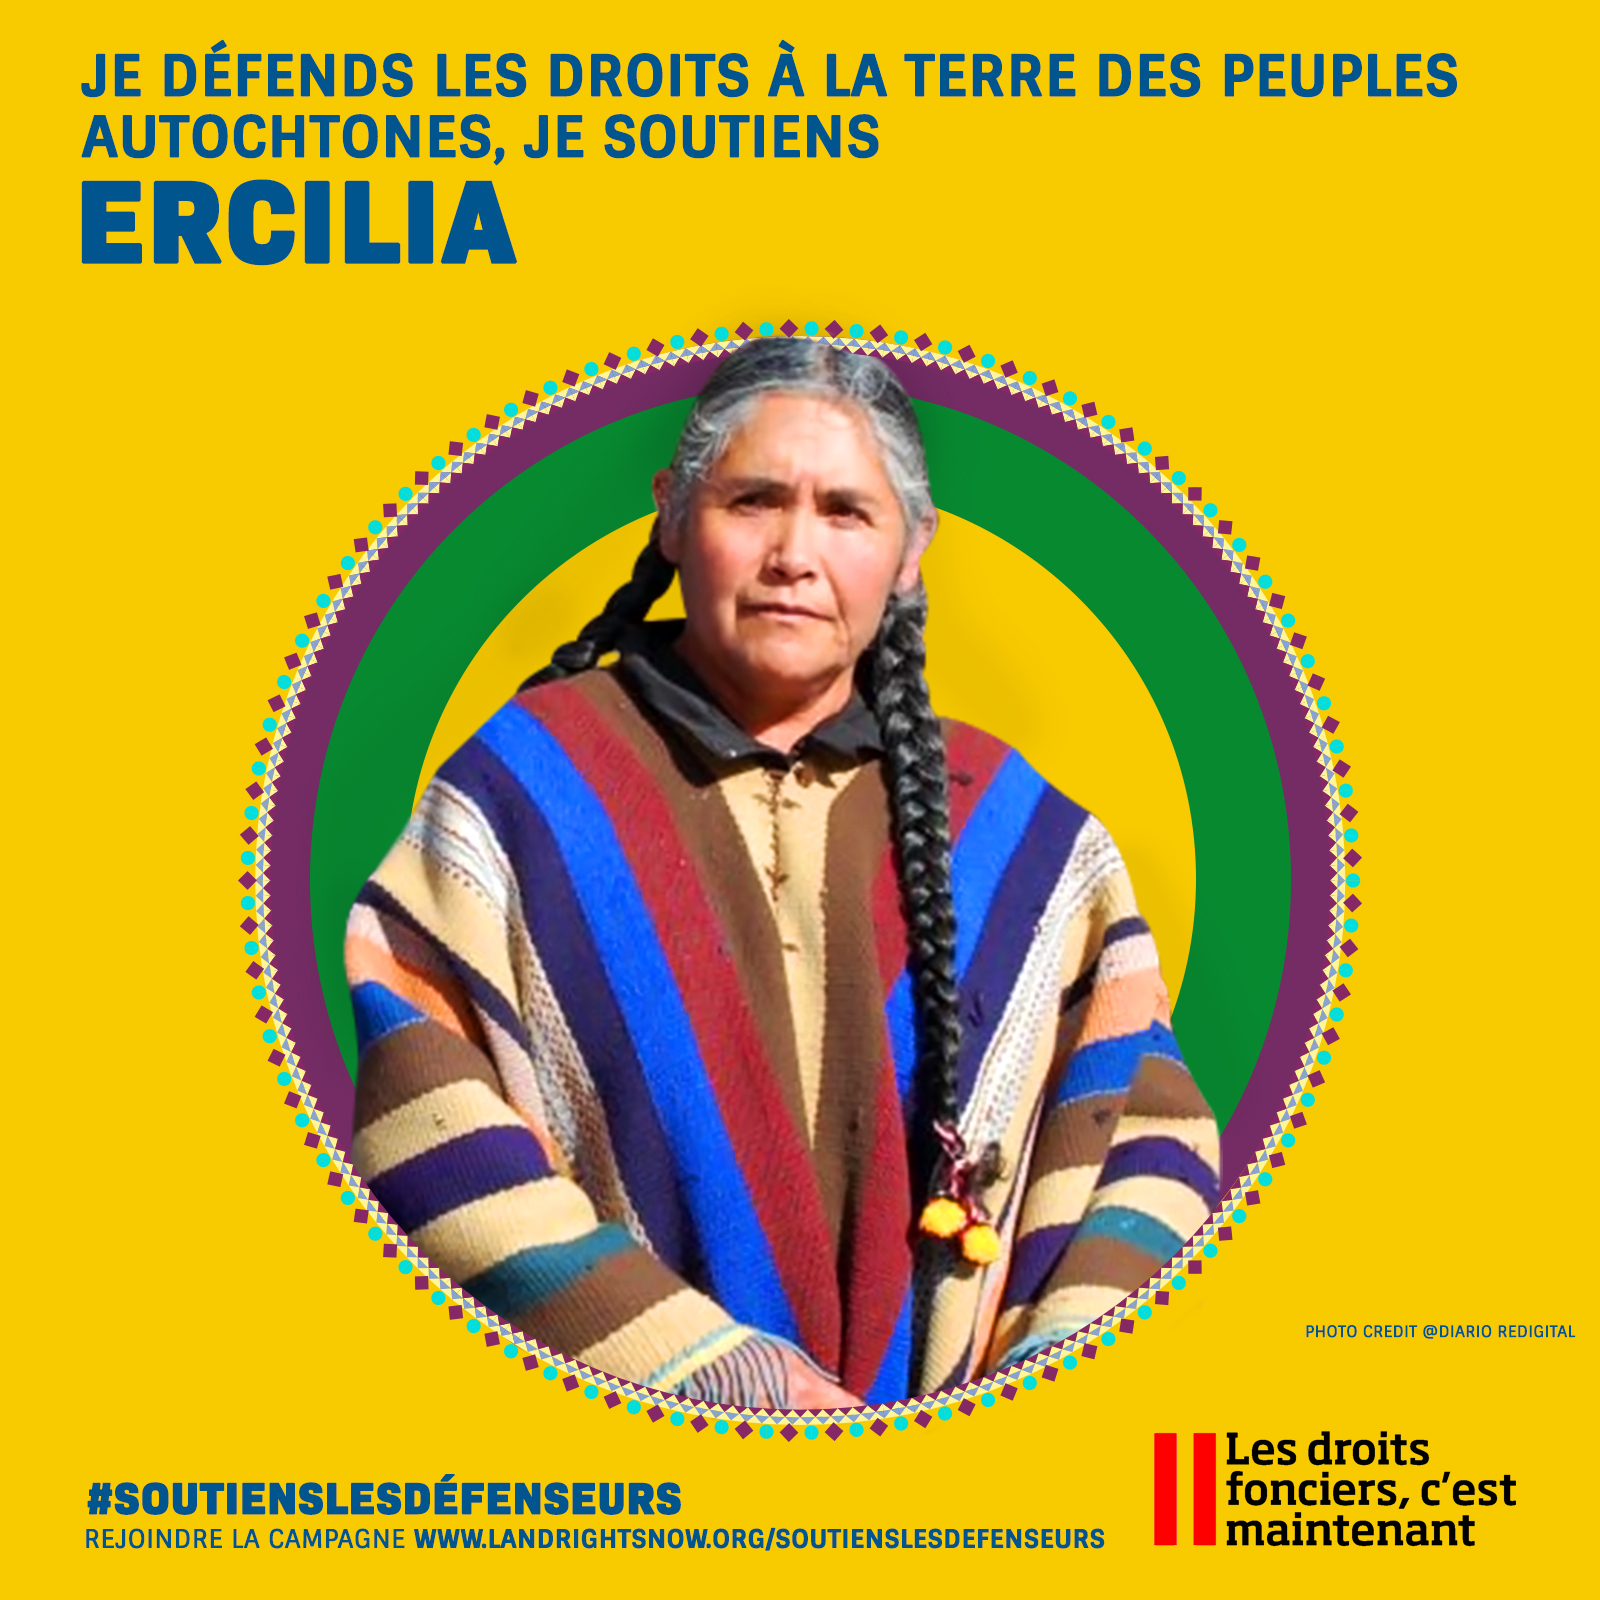 image of ercilia social card of the project with the hashtag